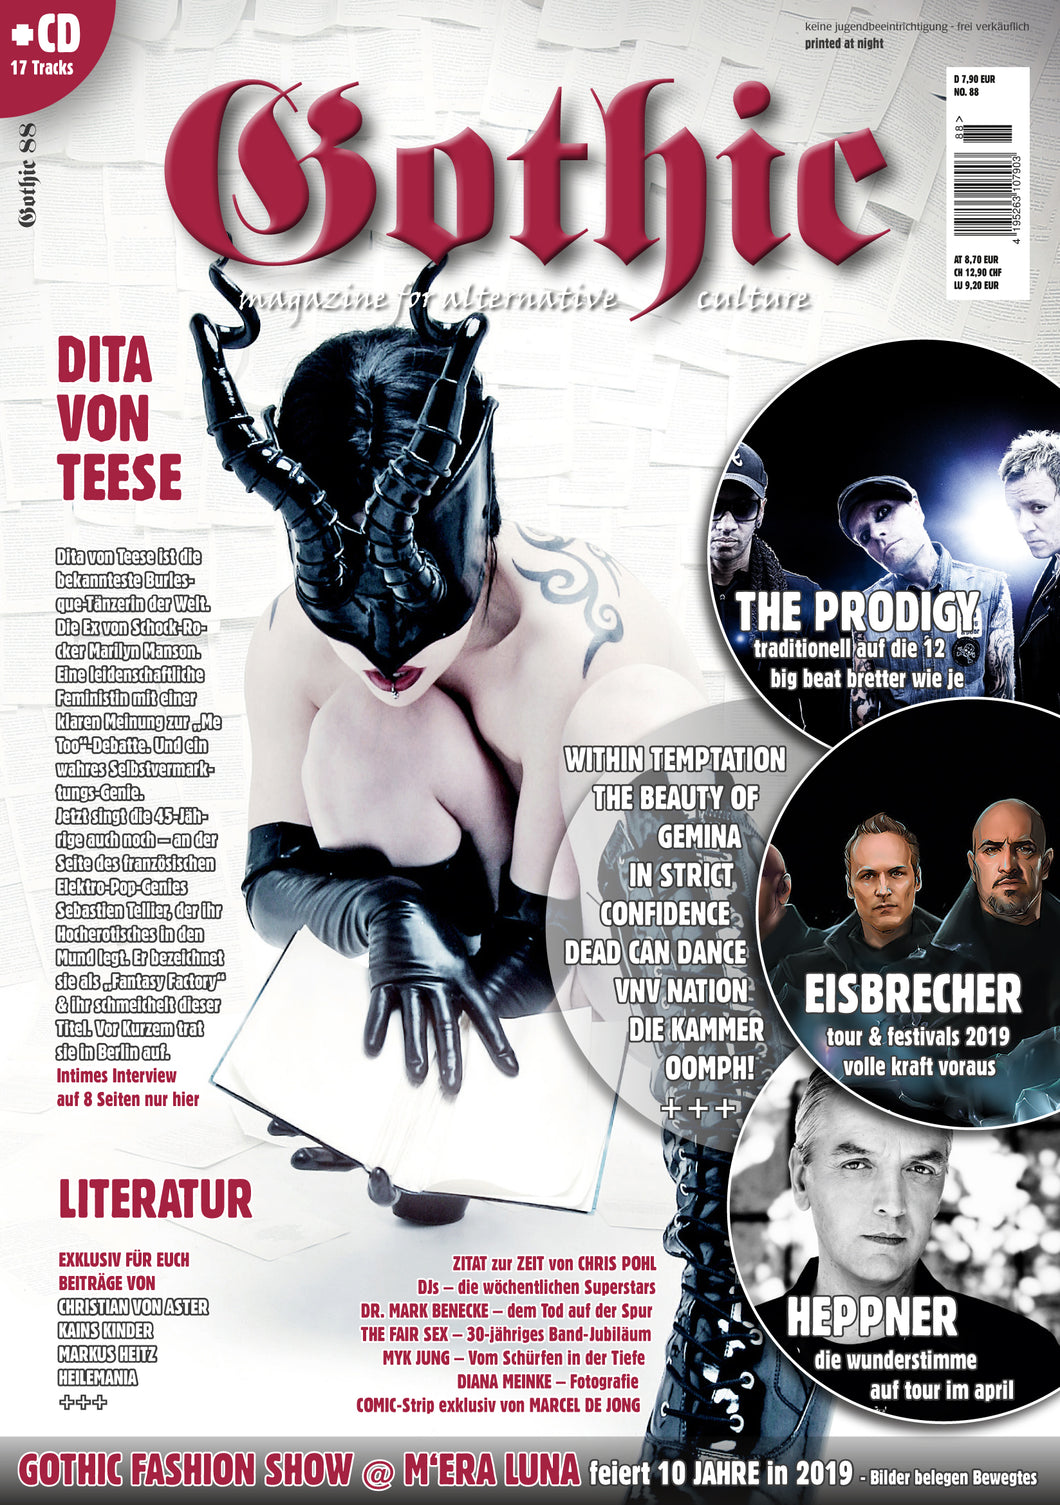 Gothic 88 deluxe incl. 2 CDs